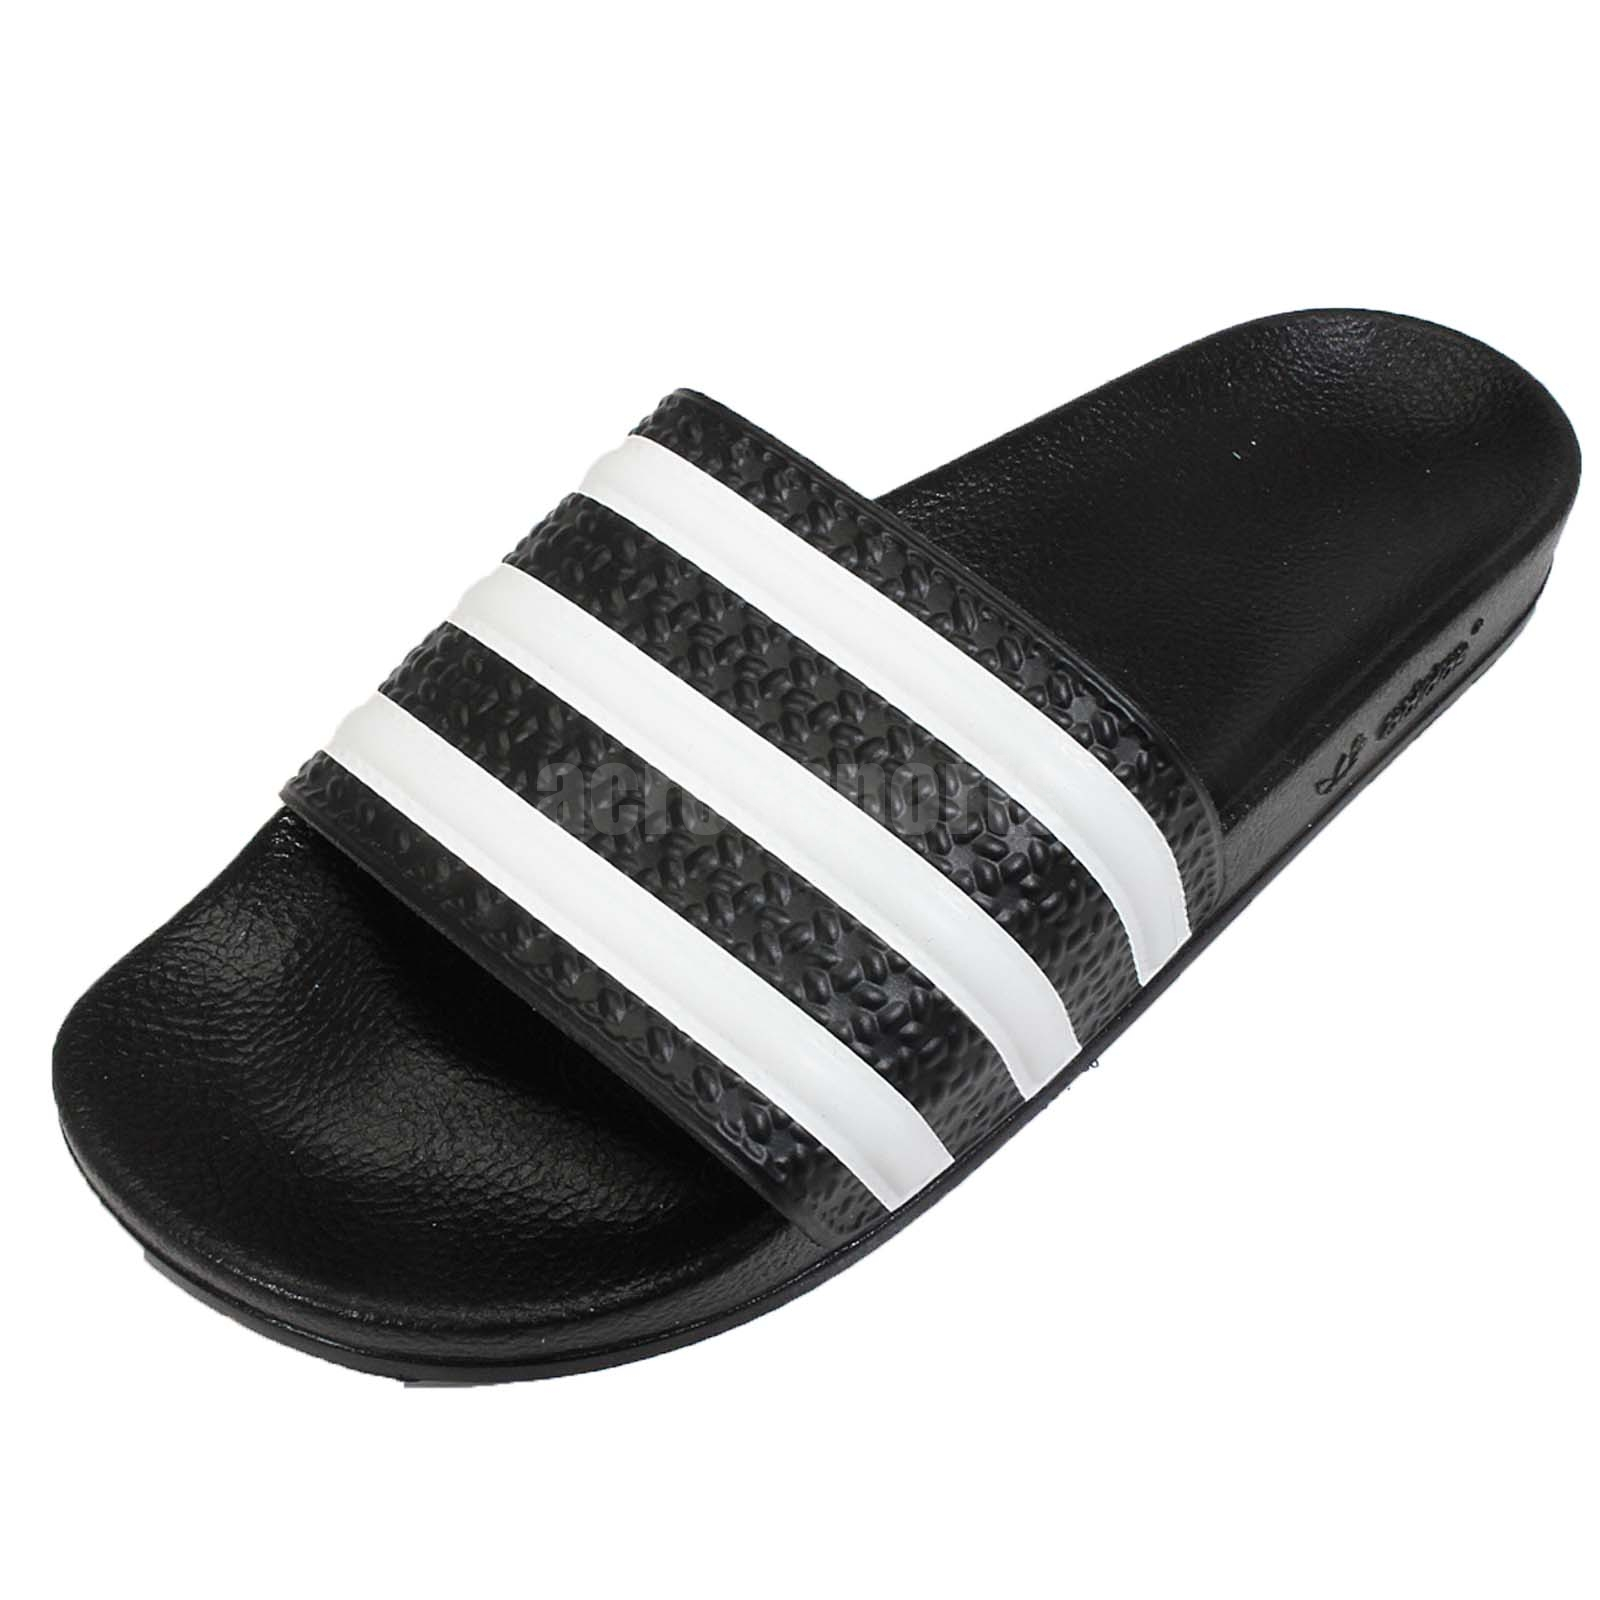 Details about adidas Adilette W 3-Stripes Black White Women Sandals Slides  Slippers 072329 d766c2fab6